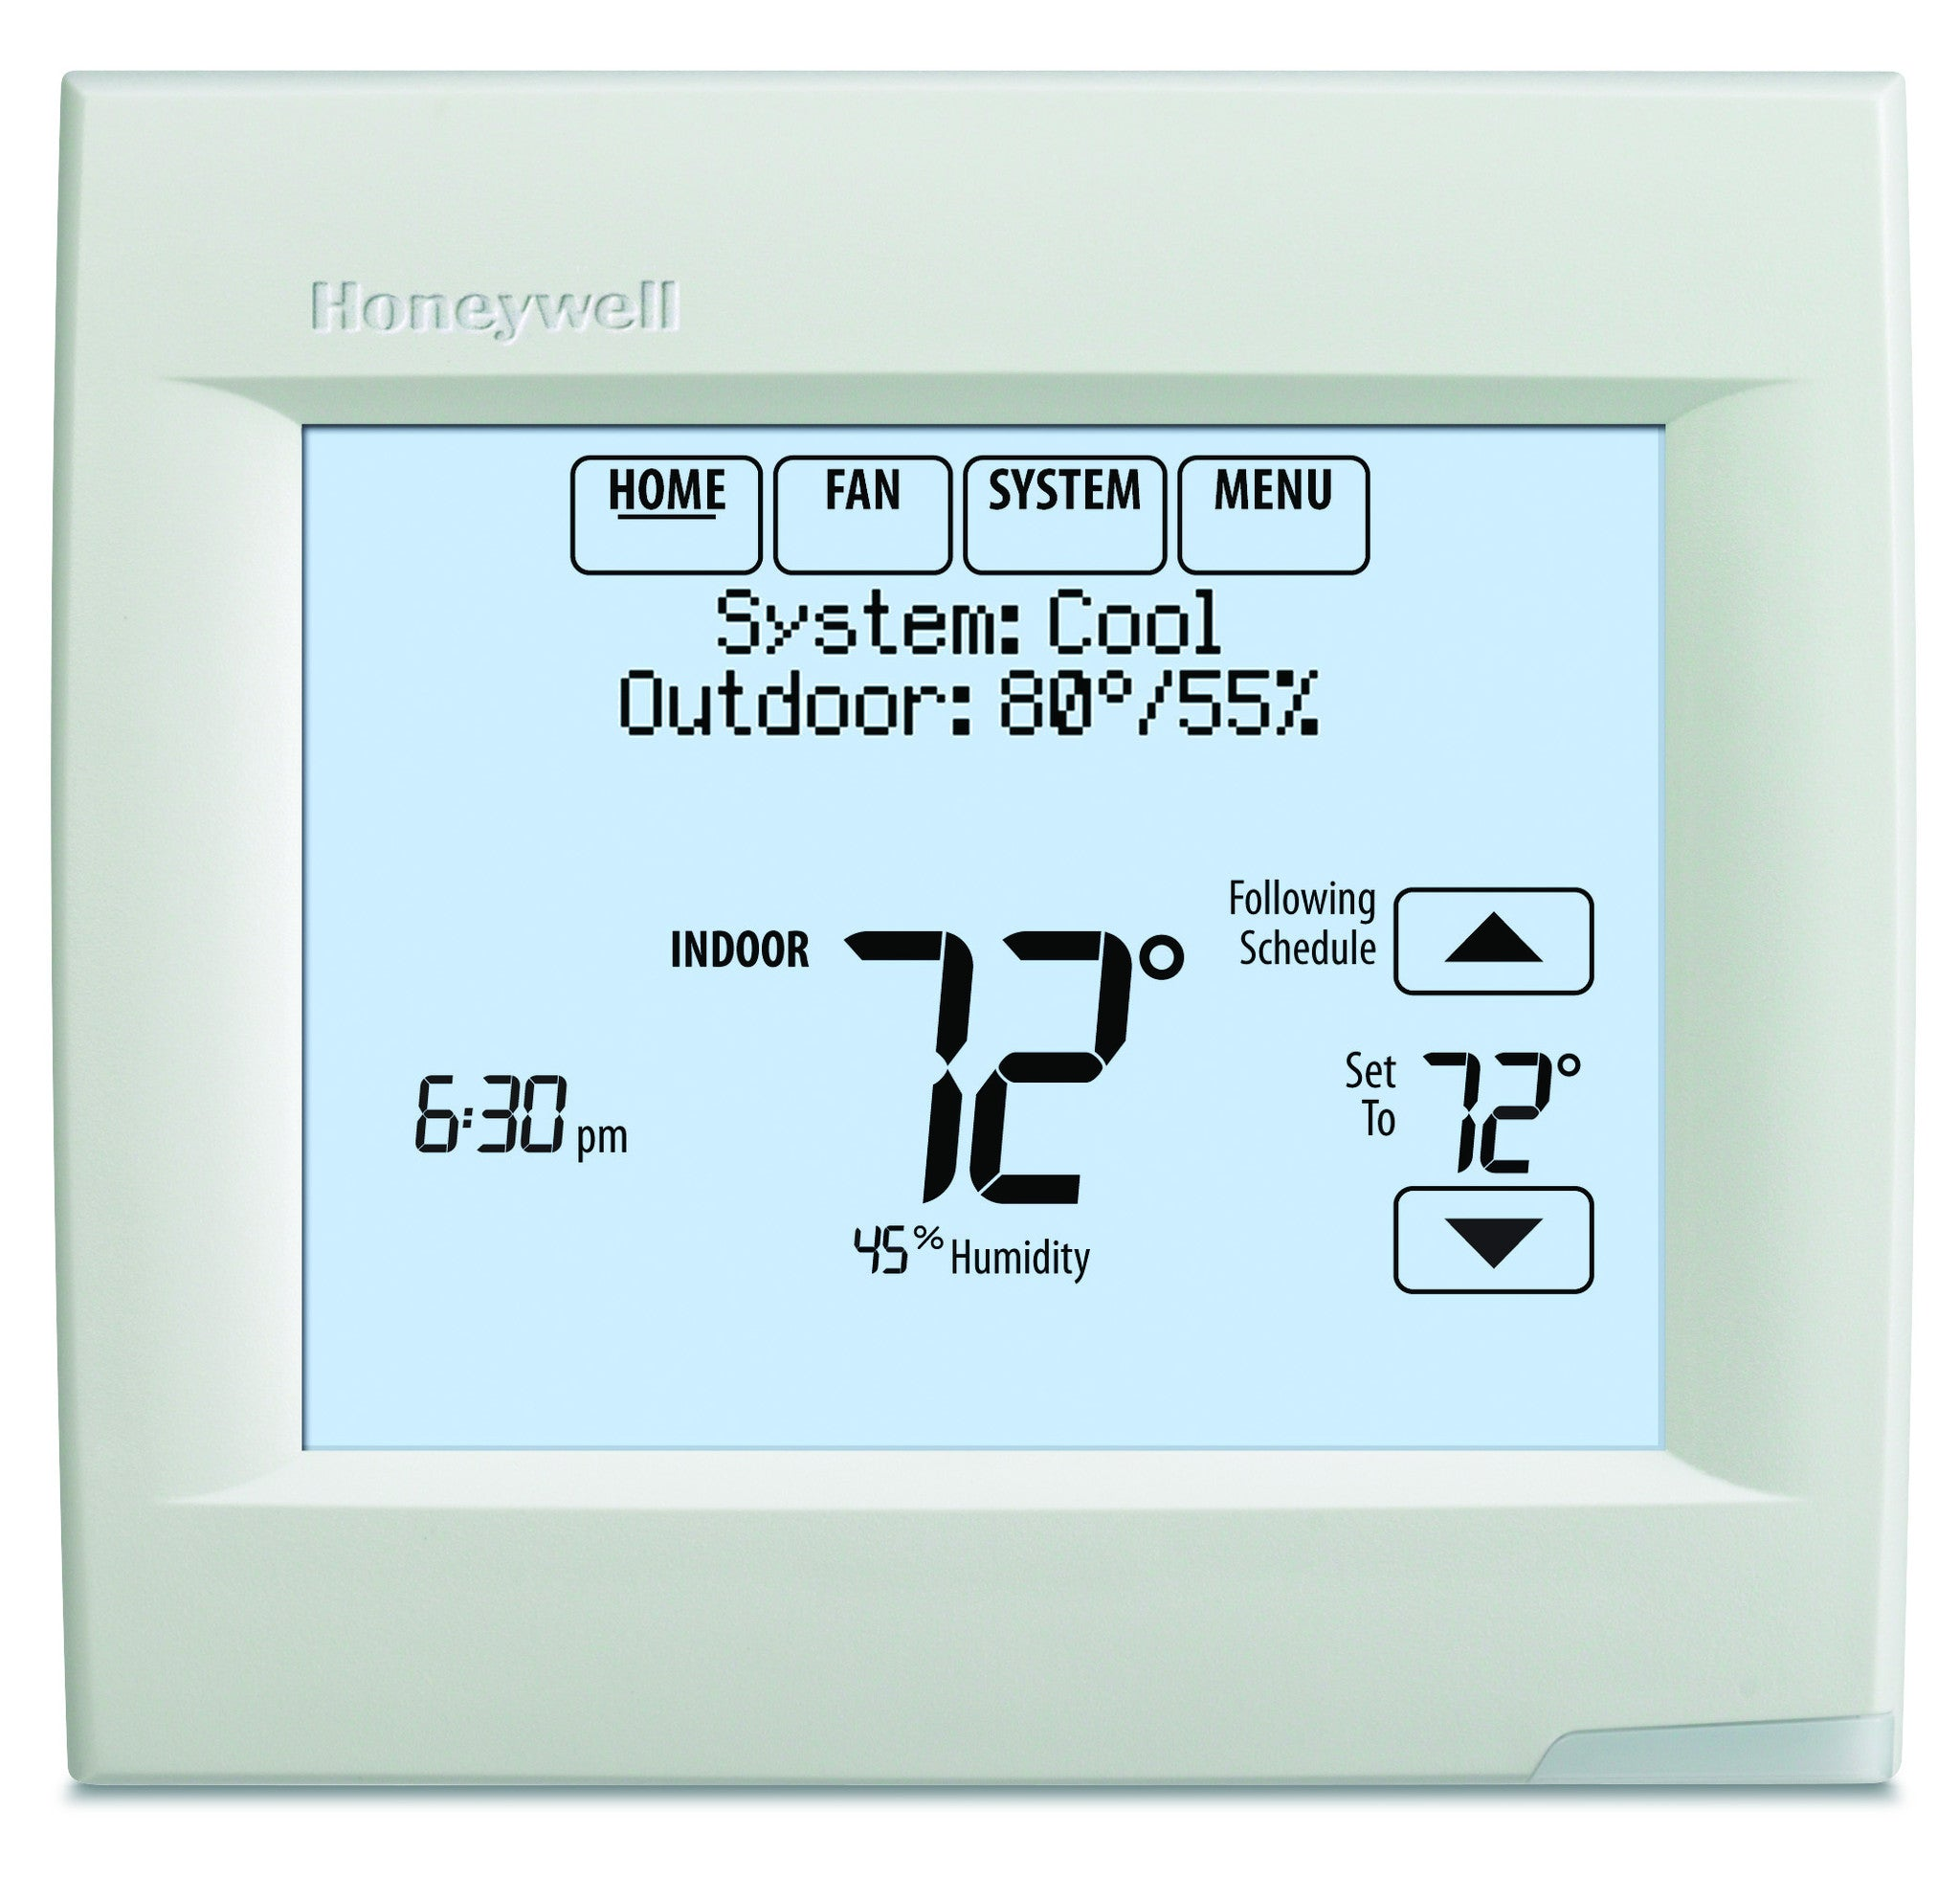 Wiring Diagram For Honeywell Vision Pro 8000 - Residential ...